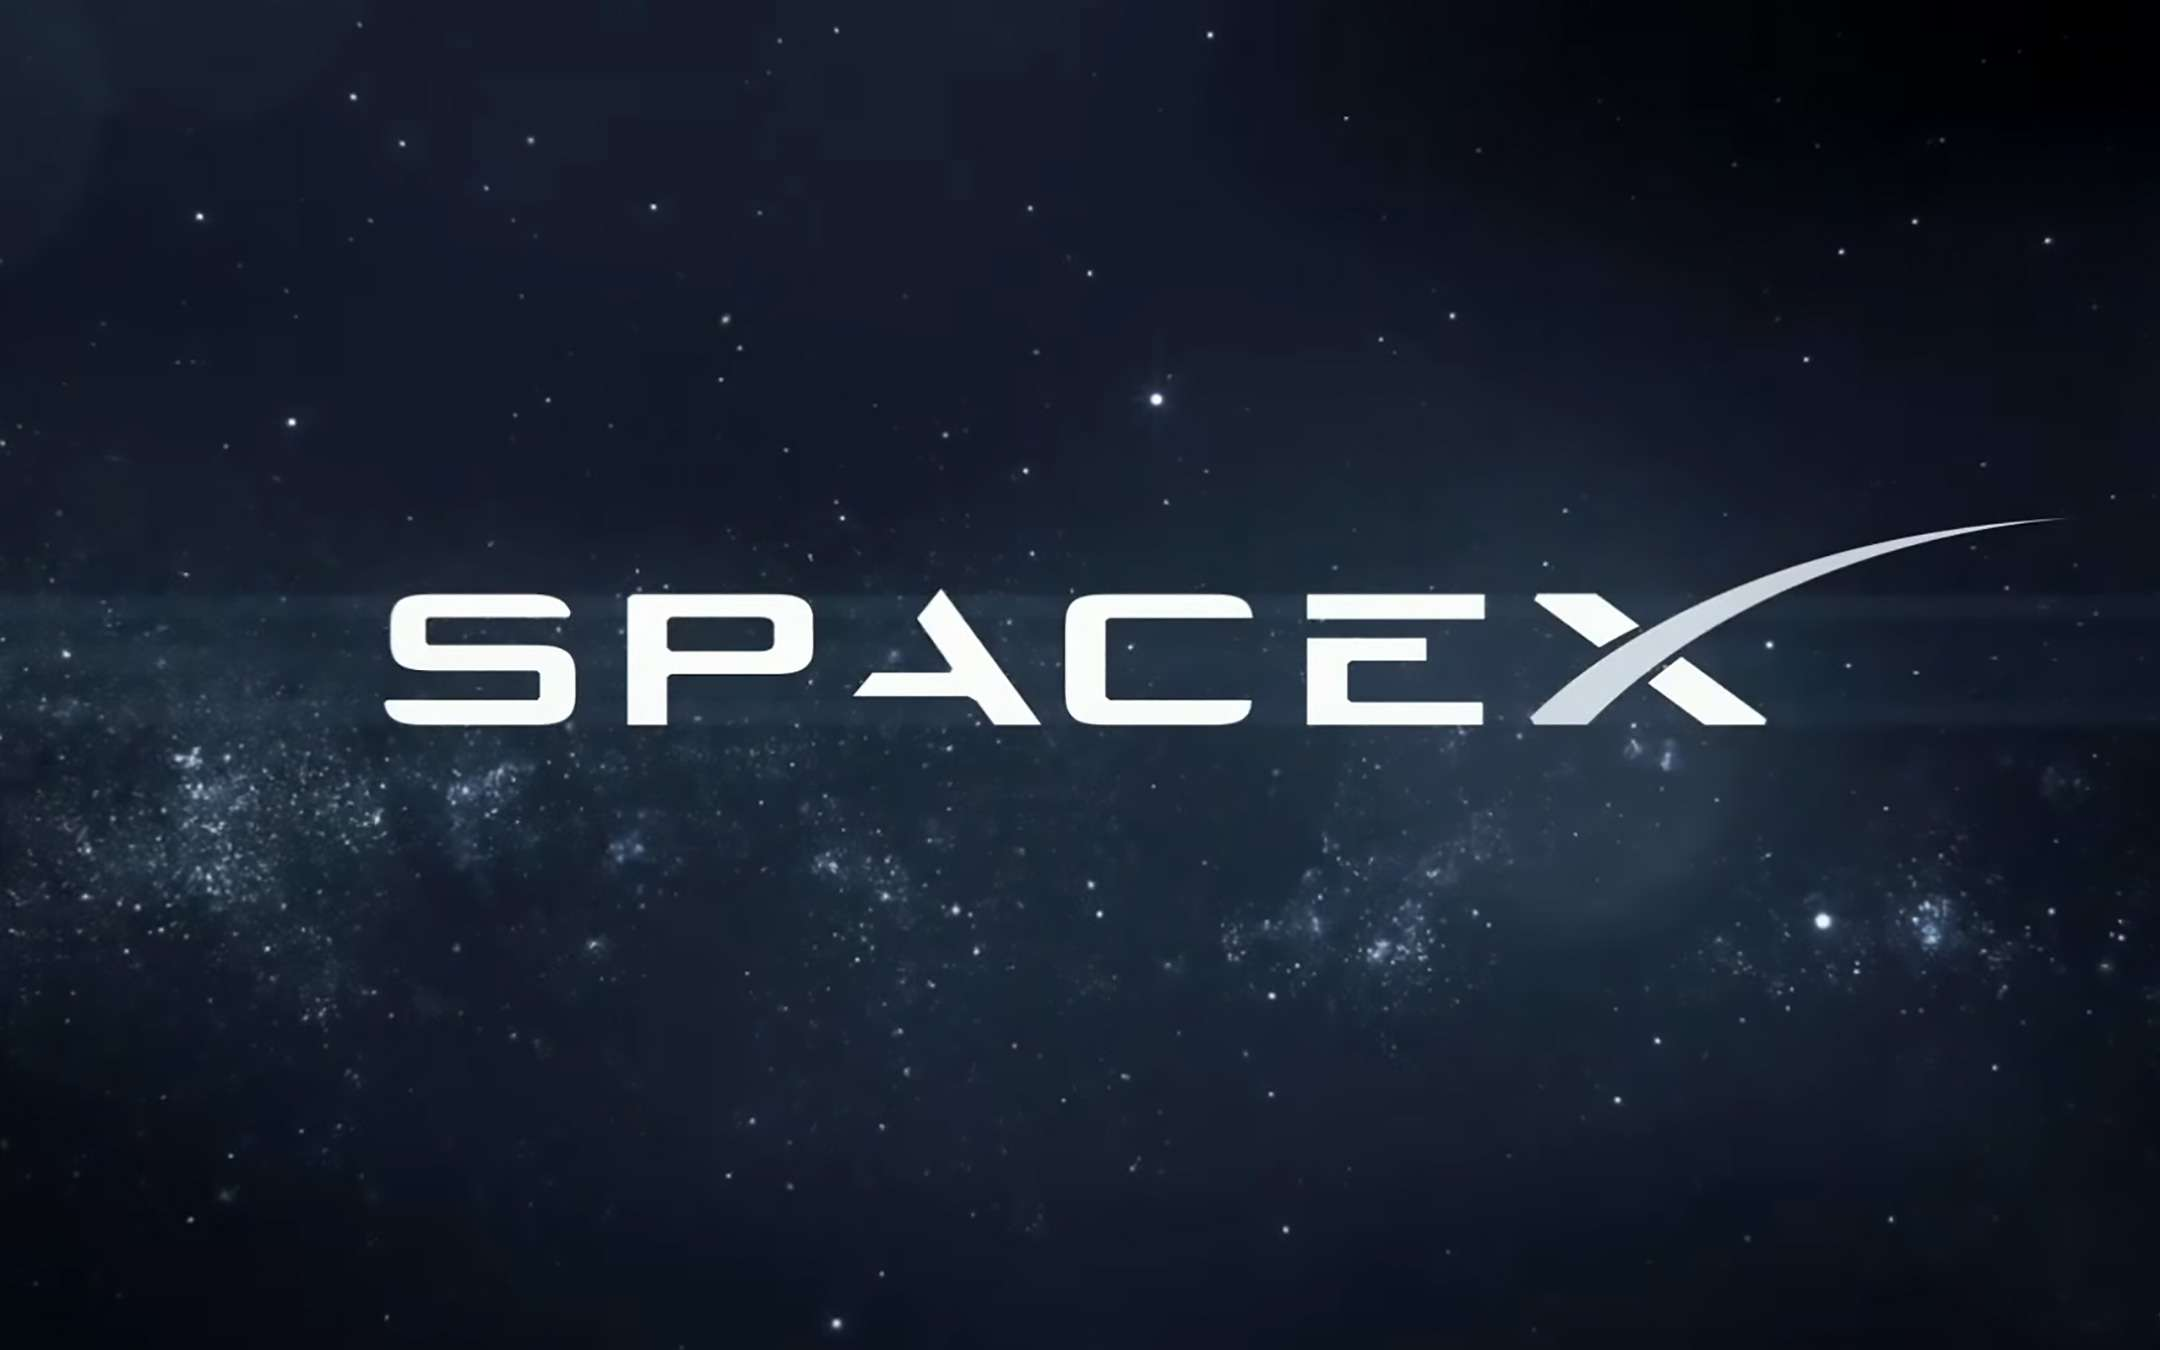 SpaceX Starlink now has 1145 satellites in space